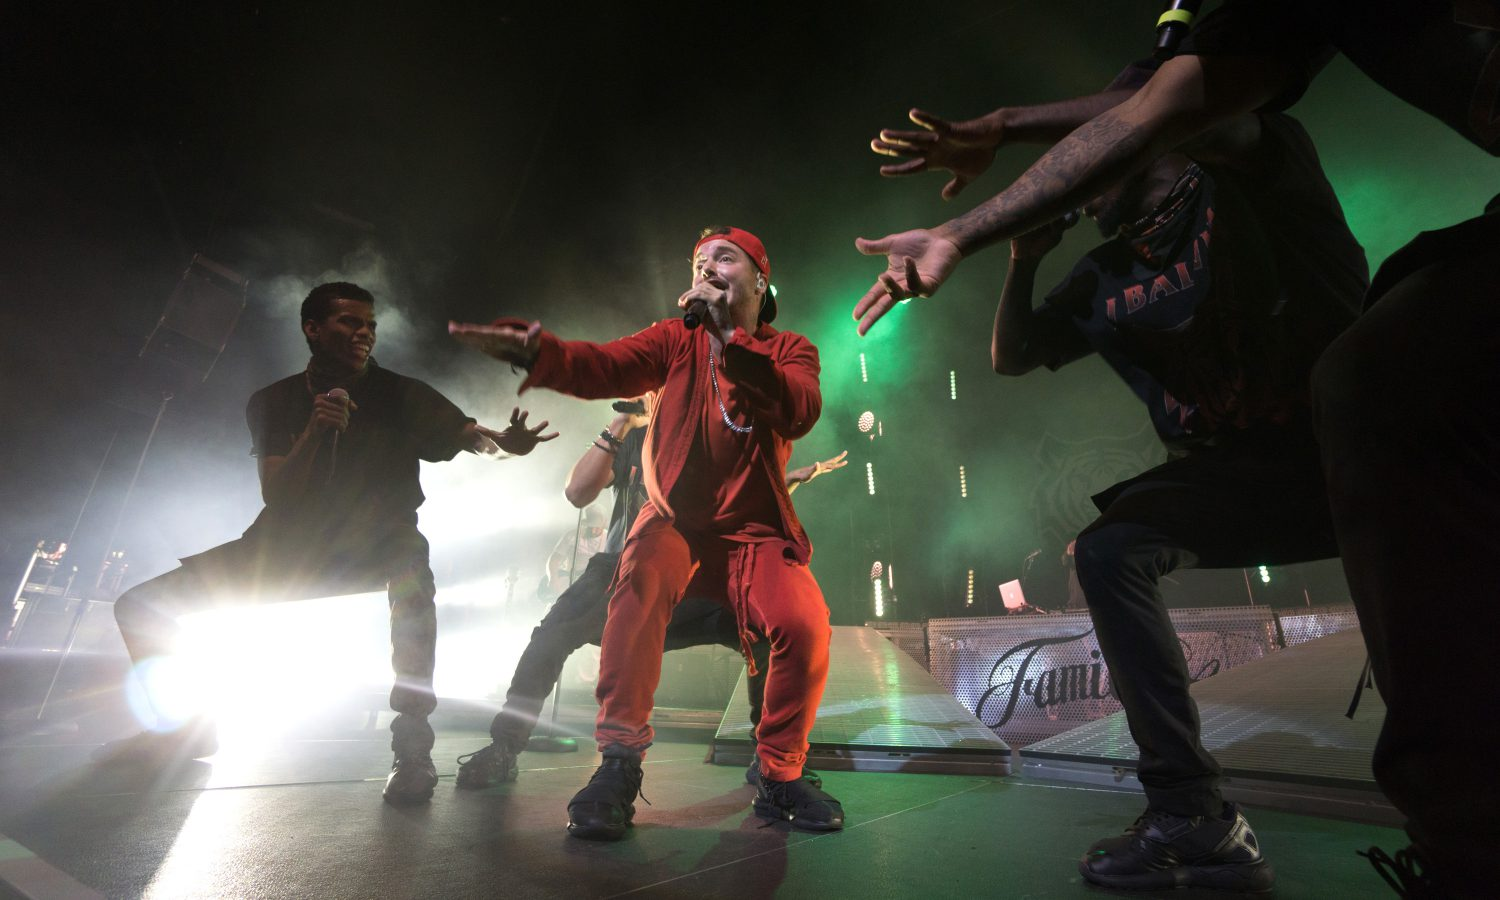 J Balvin Rocks 'La Familia' With Special Guest, Becky G